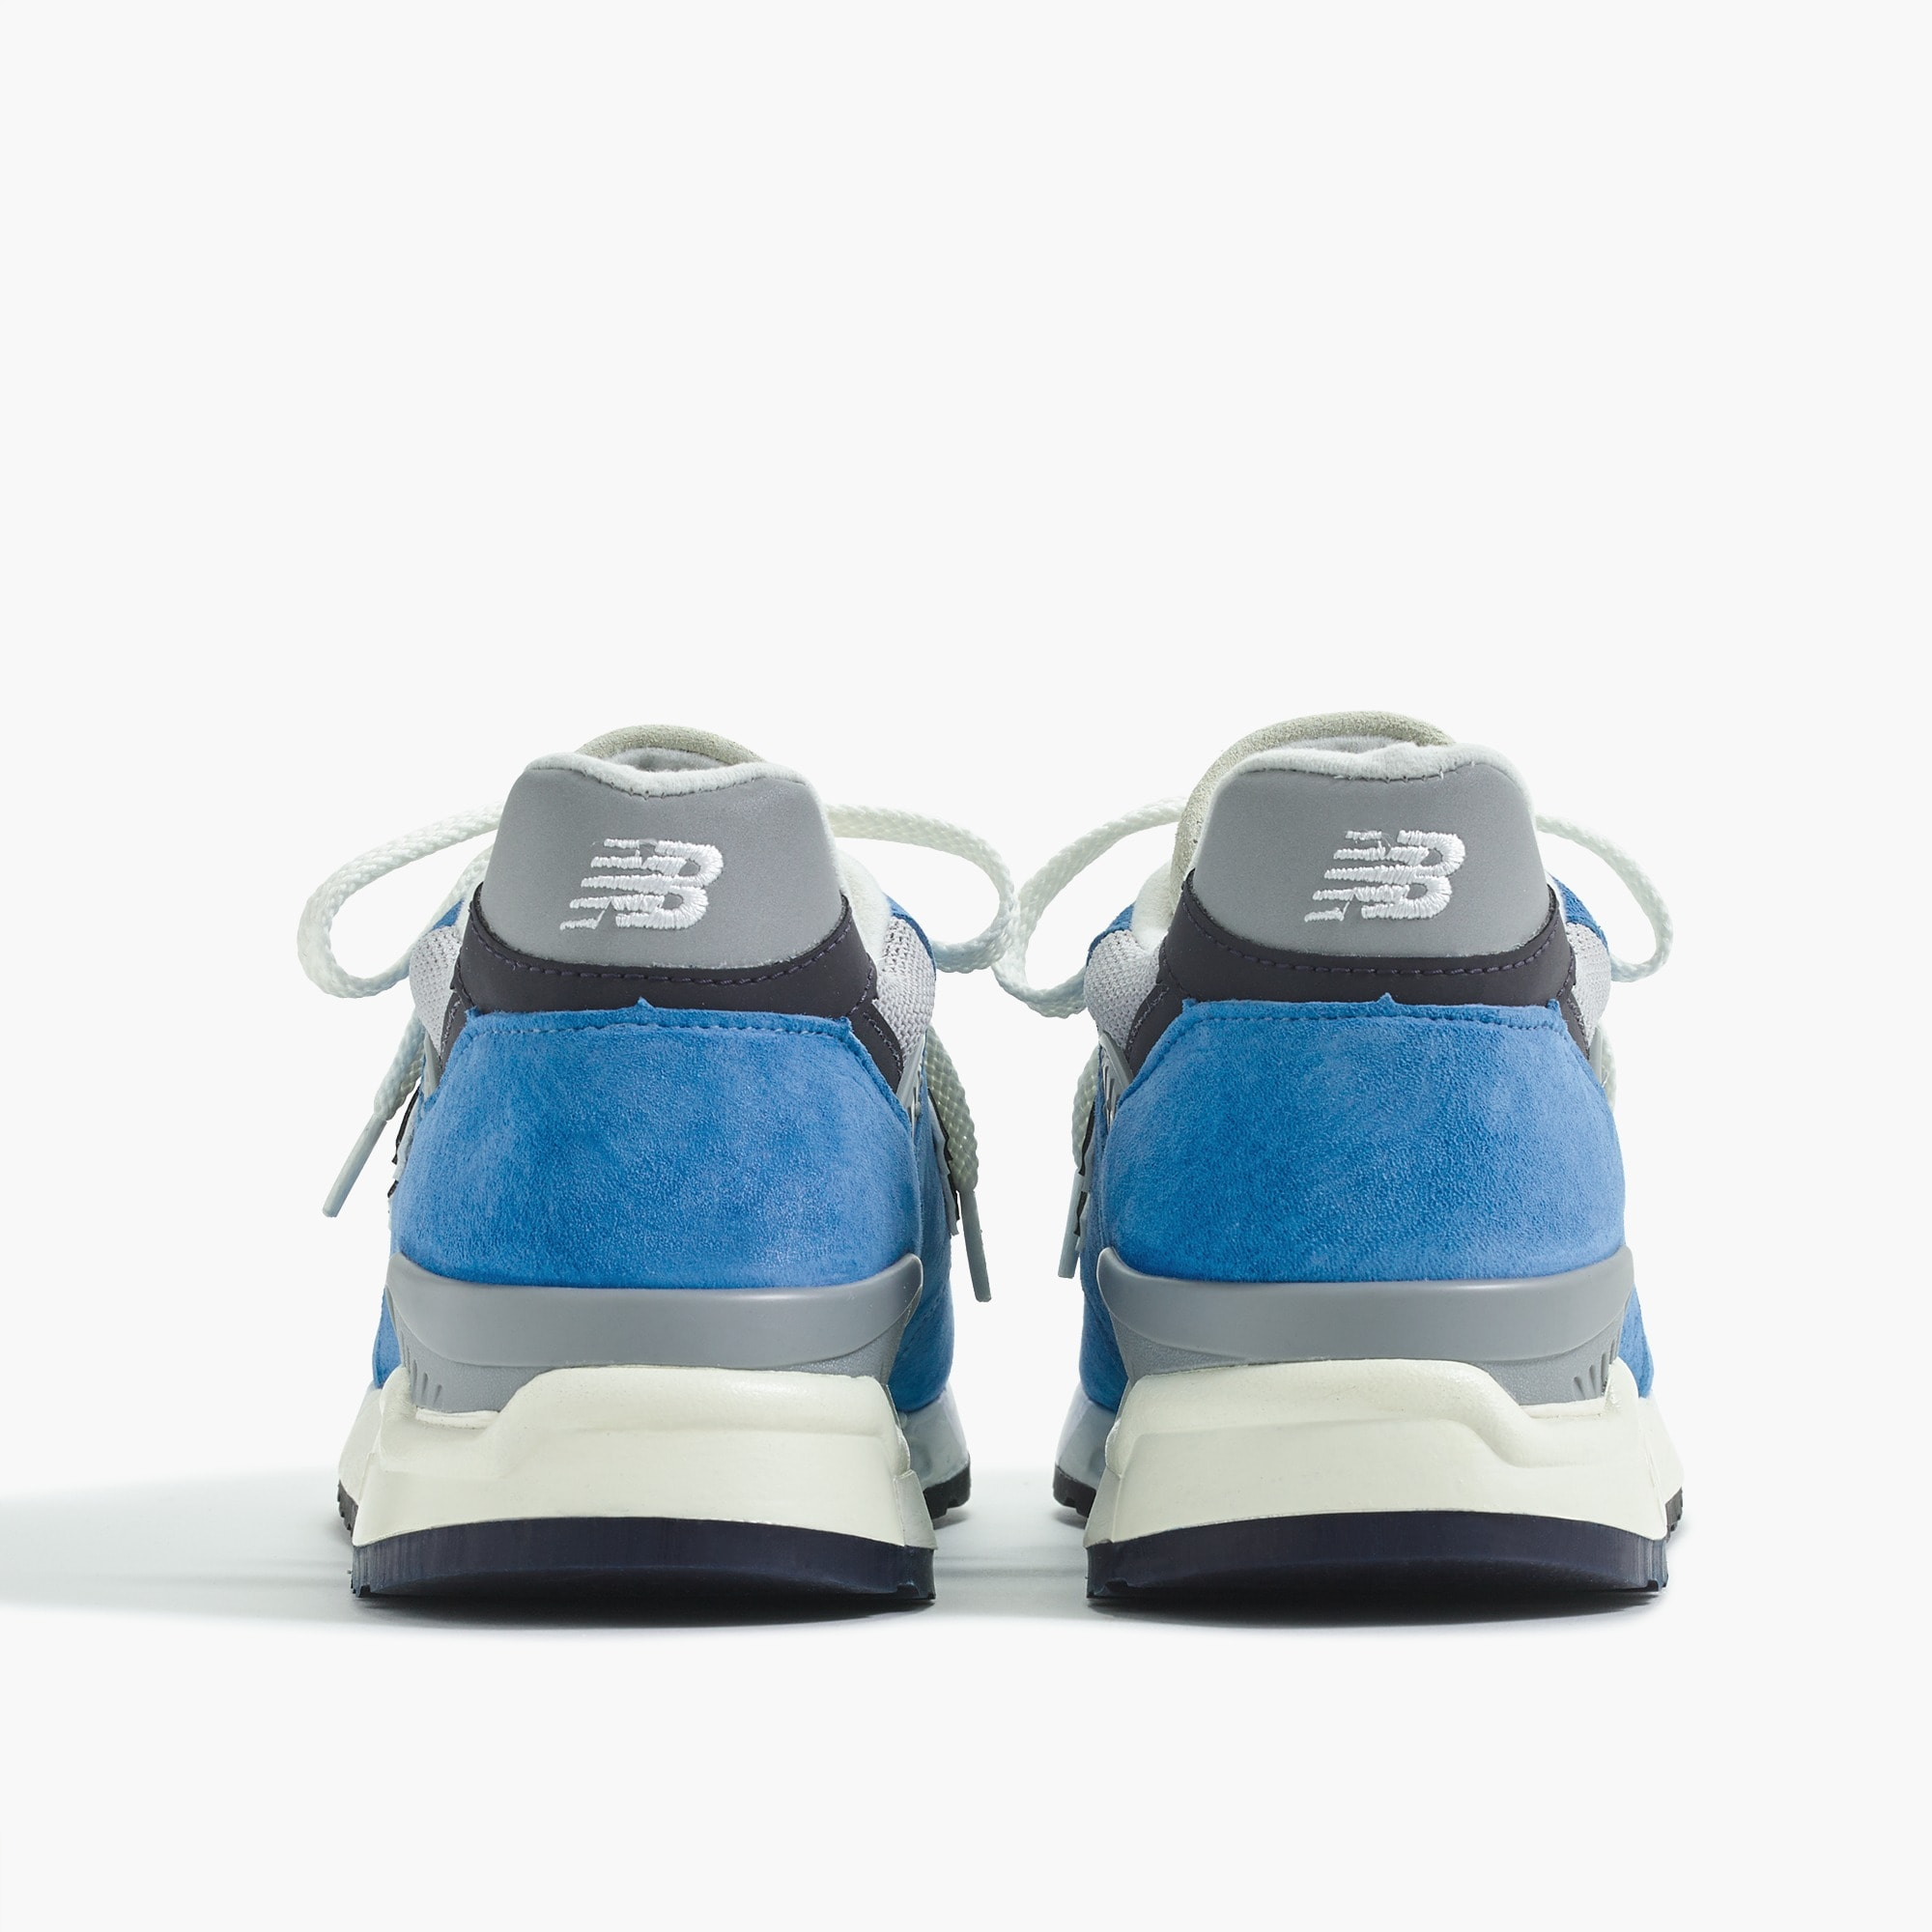 men's new balance® for j.crew 998 sneakers in bright blue - men's footwear